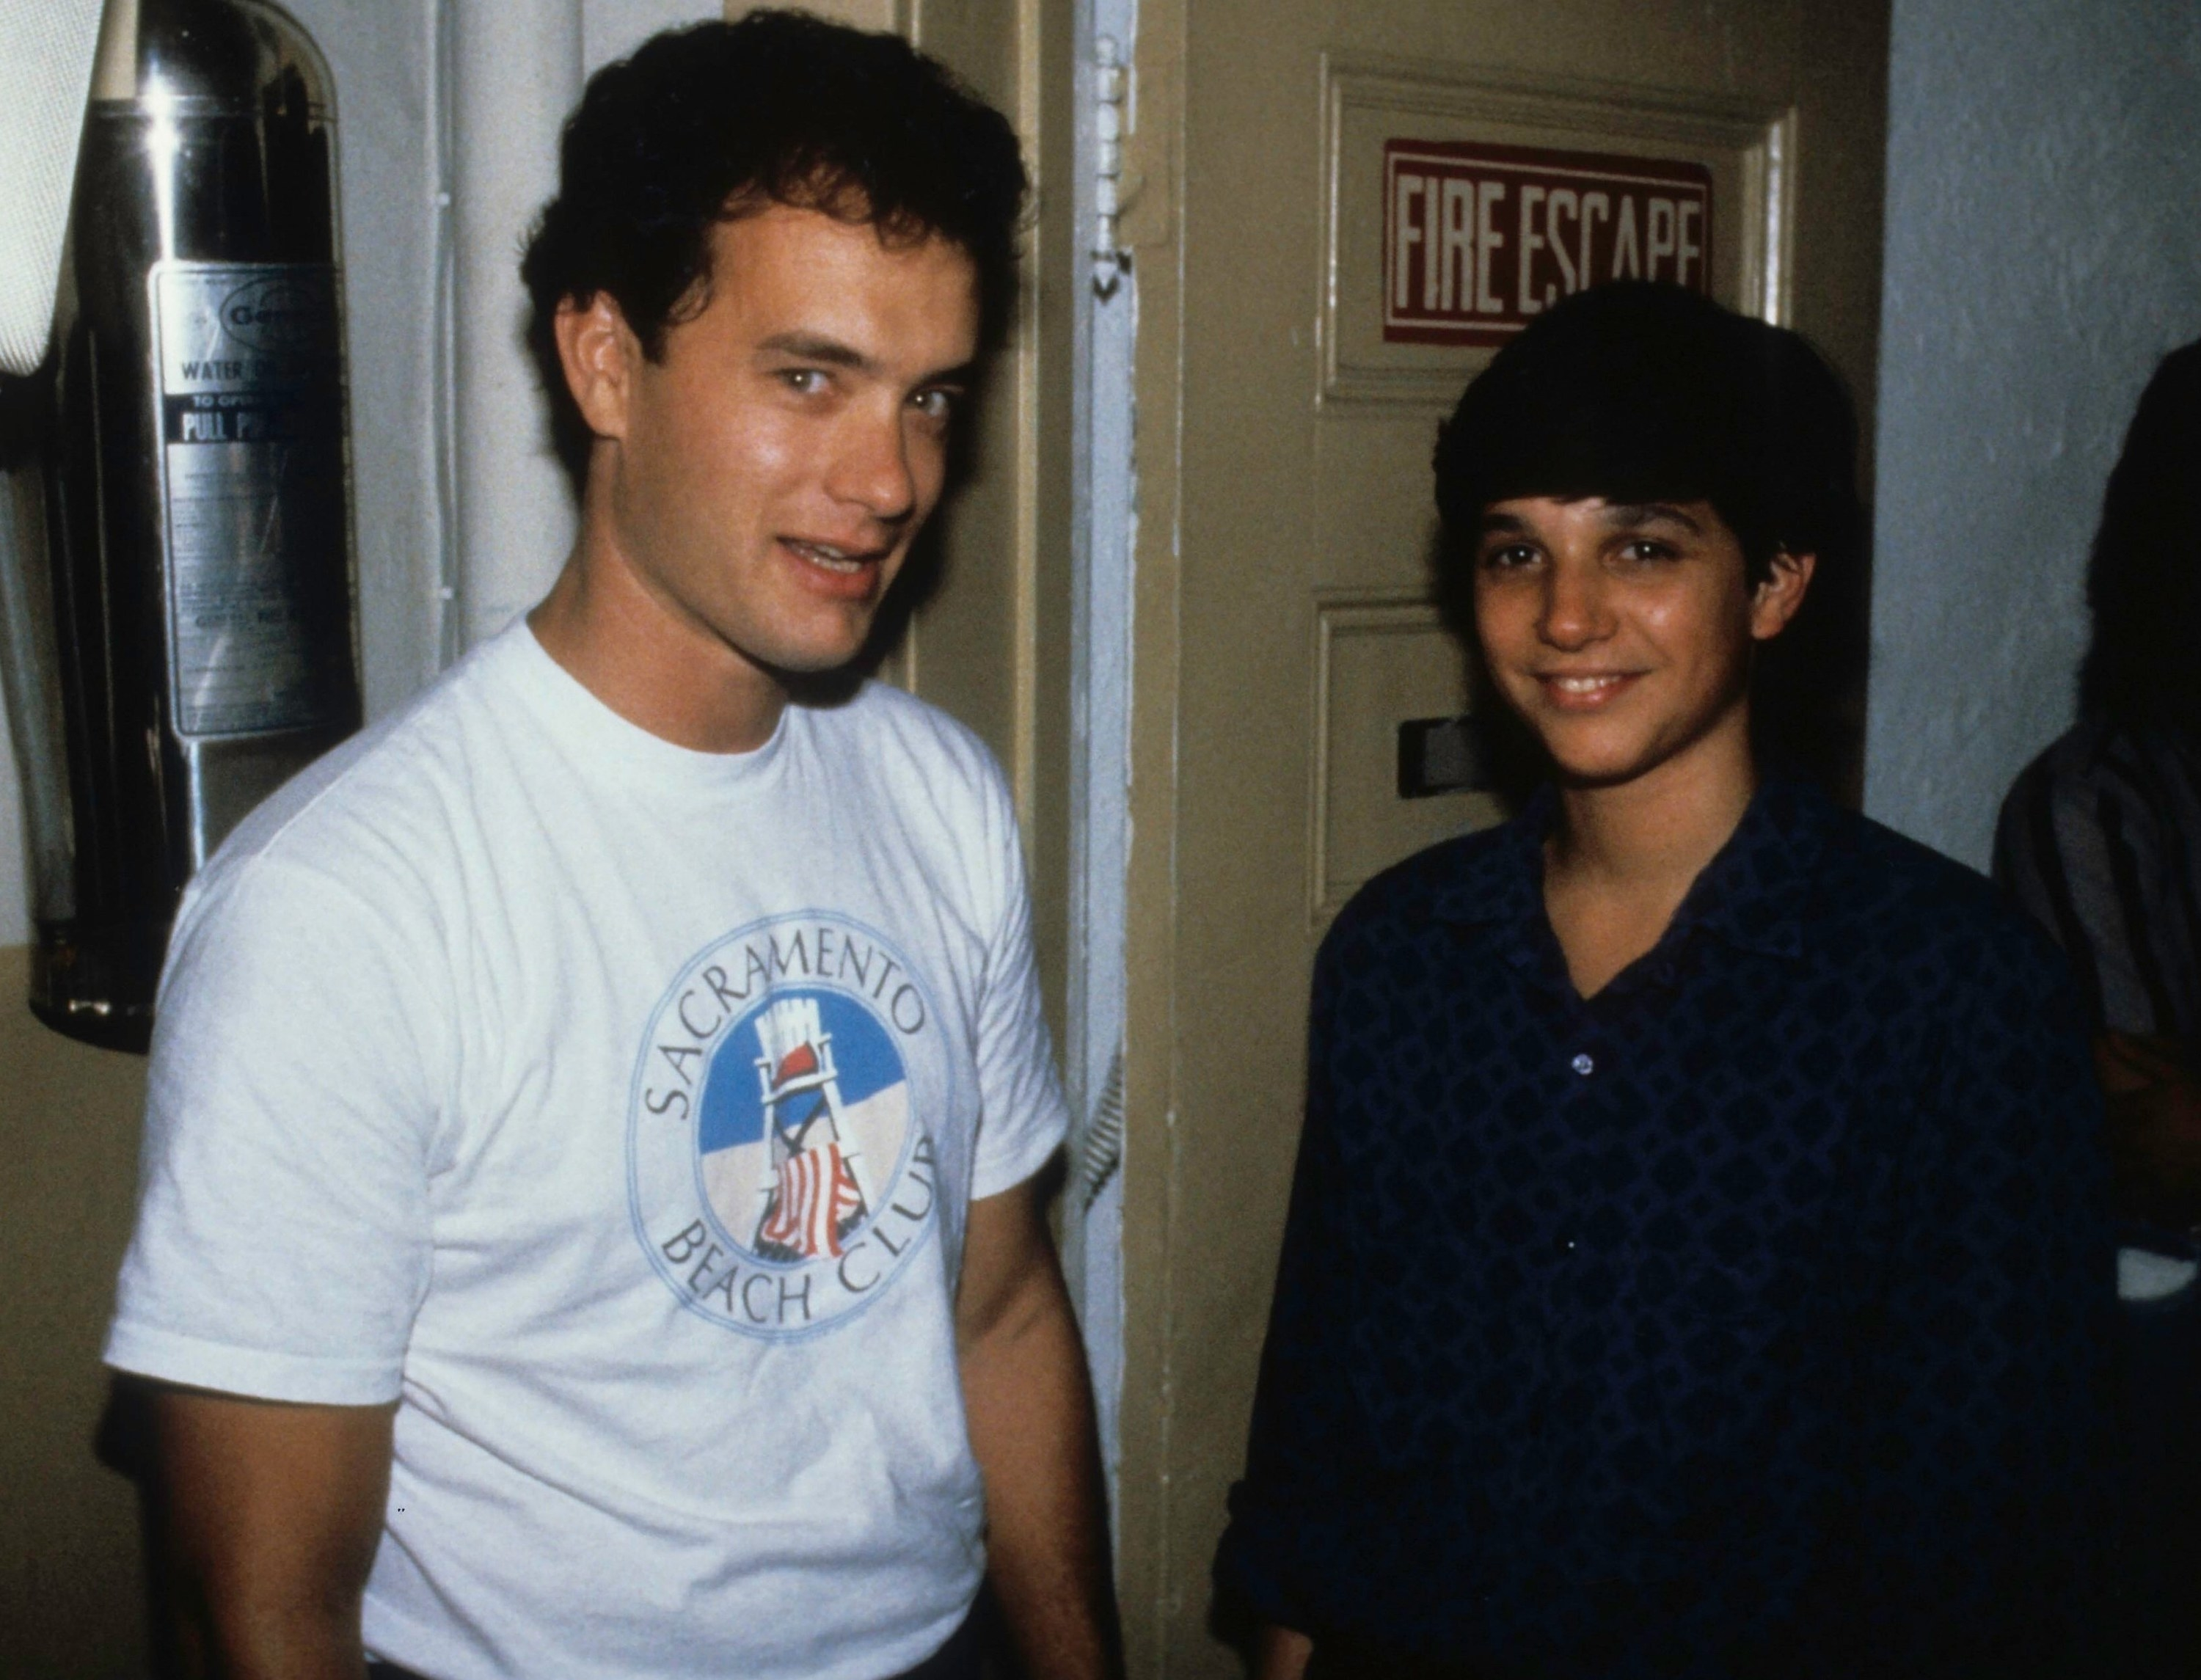 Looking nerdy with Ralph Macchio